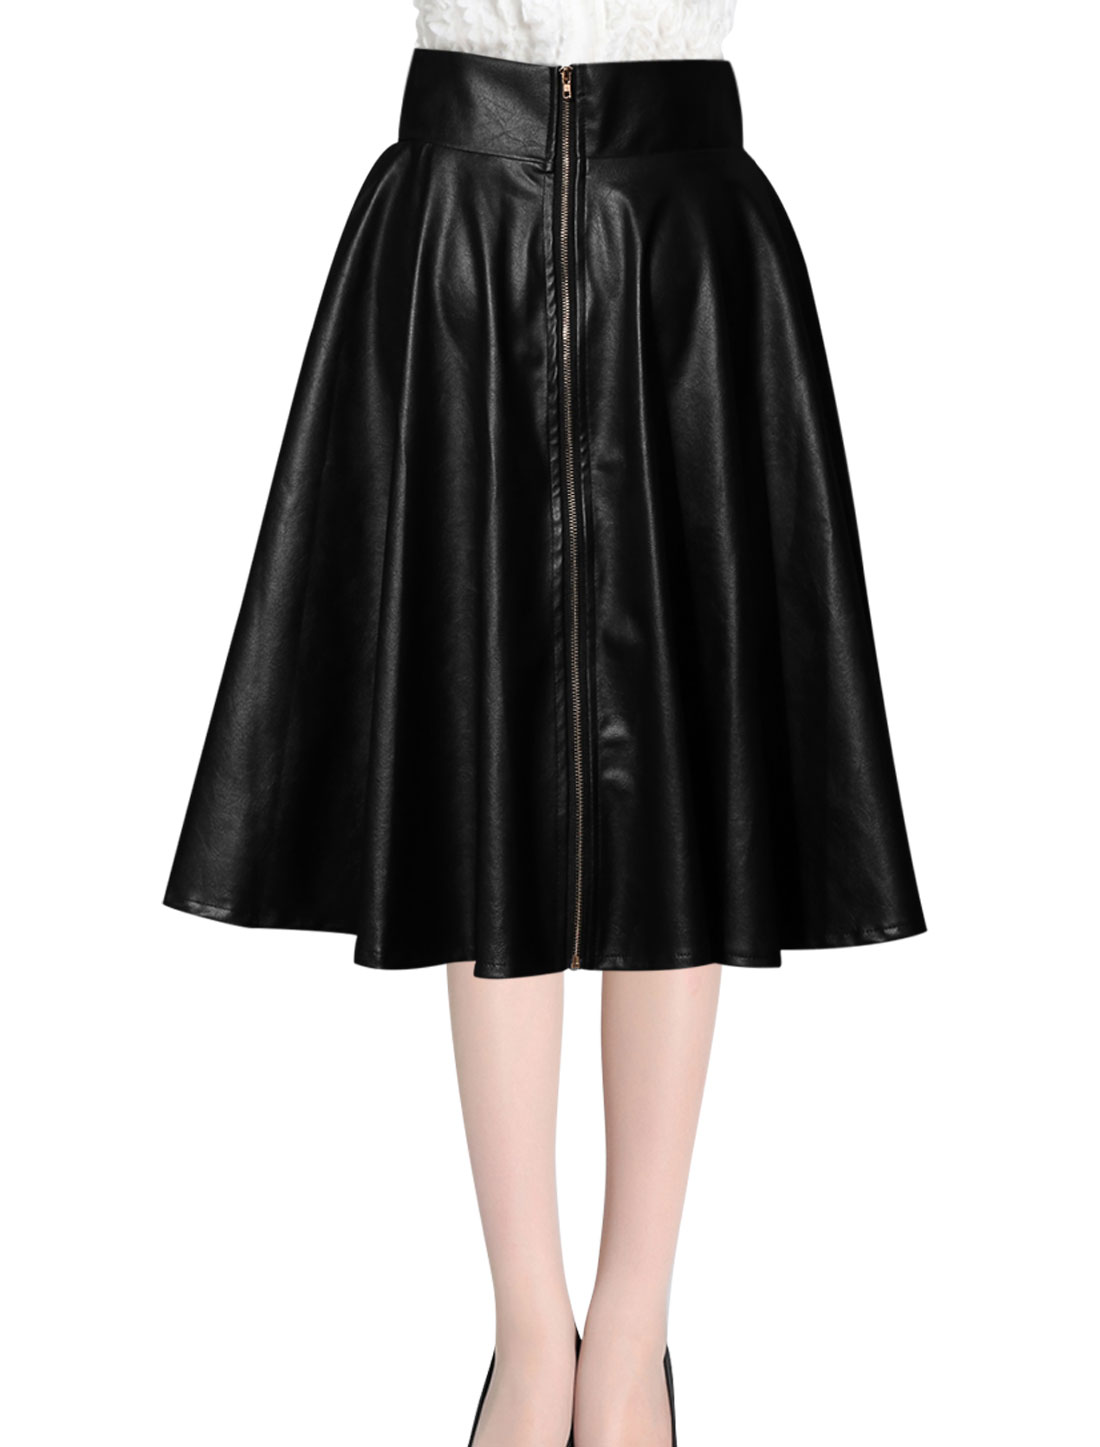 Women Zipper Back Casual A-Line Imitation Leather Skirt Black M